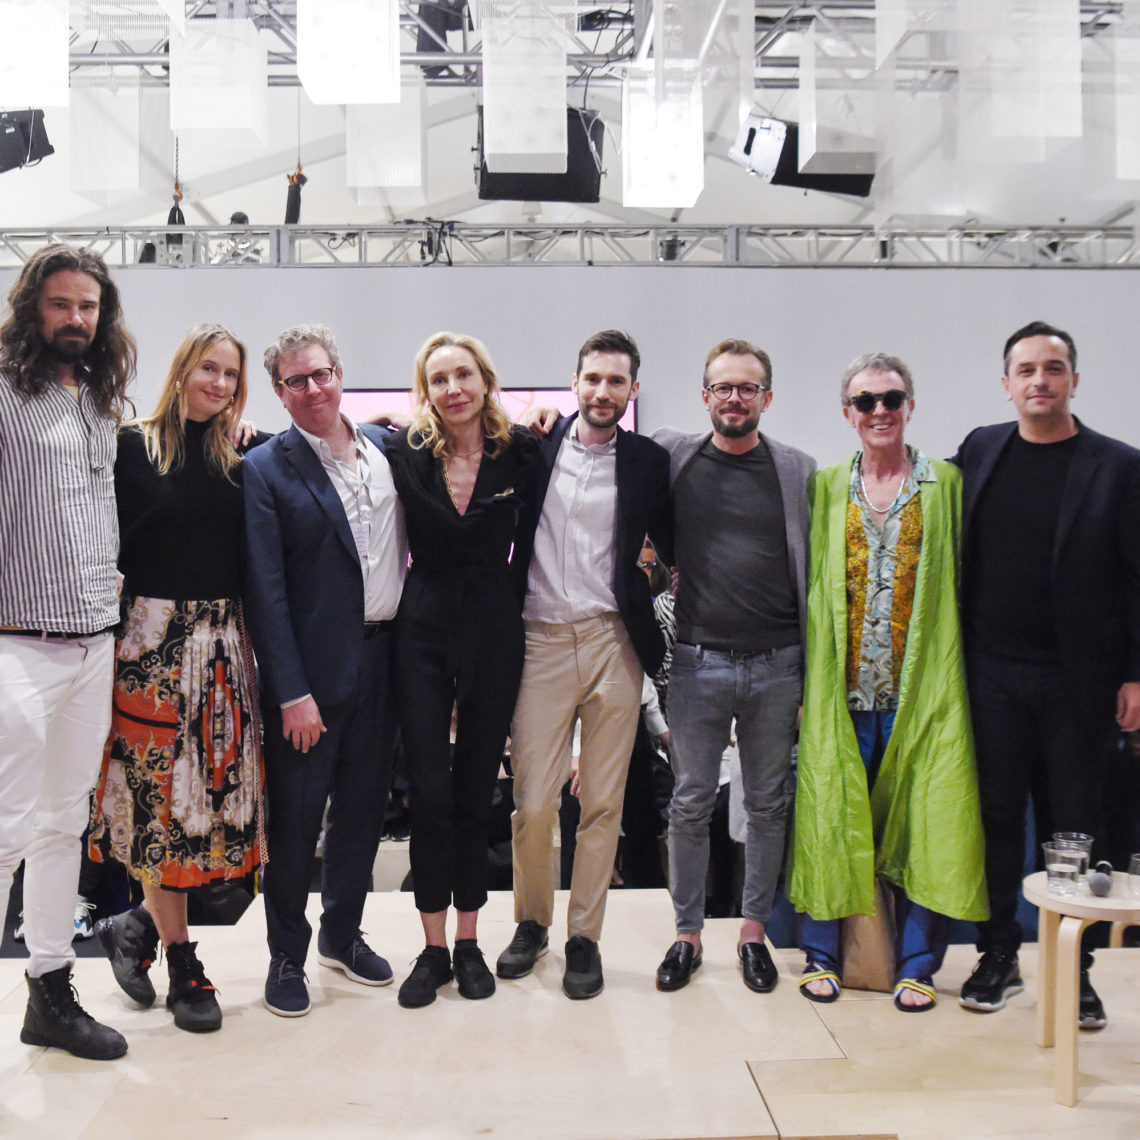 Therme Forum, Therme Art, Design Miami, Design Miami Talks Program, Talks Program, Studio Drift, Ralph Nauta, Lonneke Gordijn, Roth Eduardo Neira, Studio Swine, Alexander Groves, Claudia Paetzold, Mikolaj Sekutowicz, Pace Gallery, Marc Glimcher